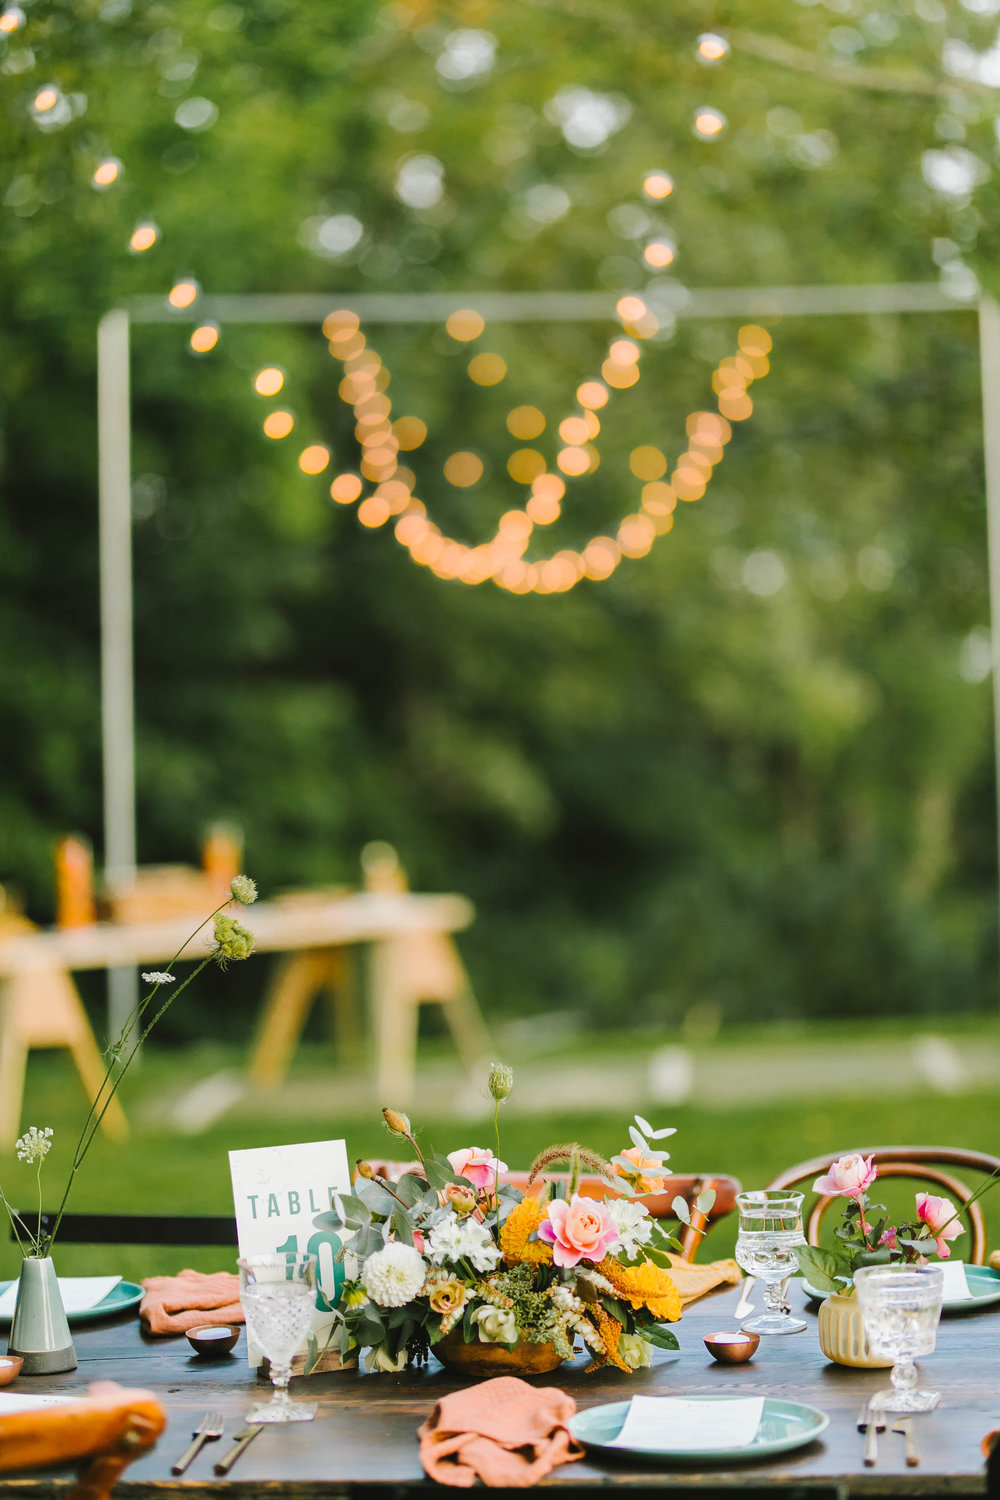 Vermont back yard farm wedding West winds farm vingtage casual unconventional - Emily Tebbetts Photography-17.jpg